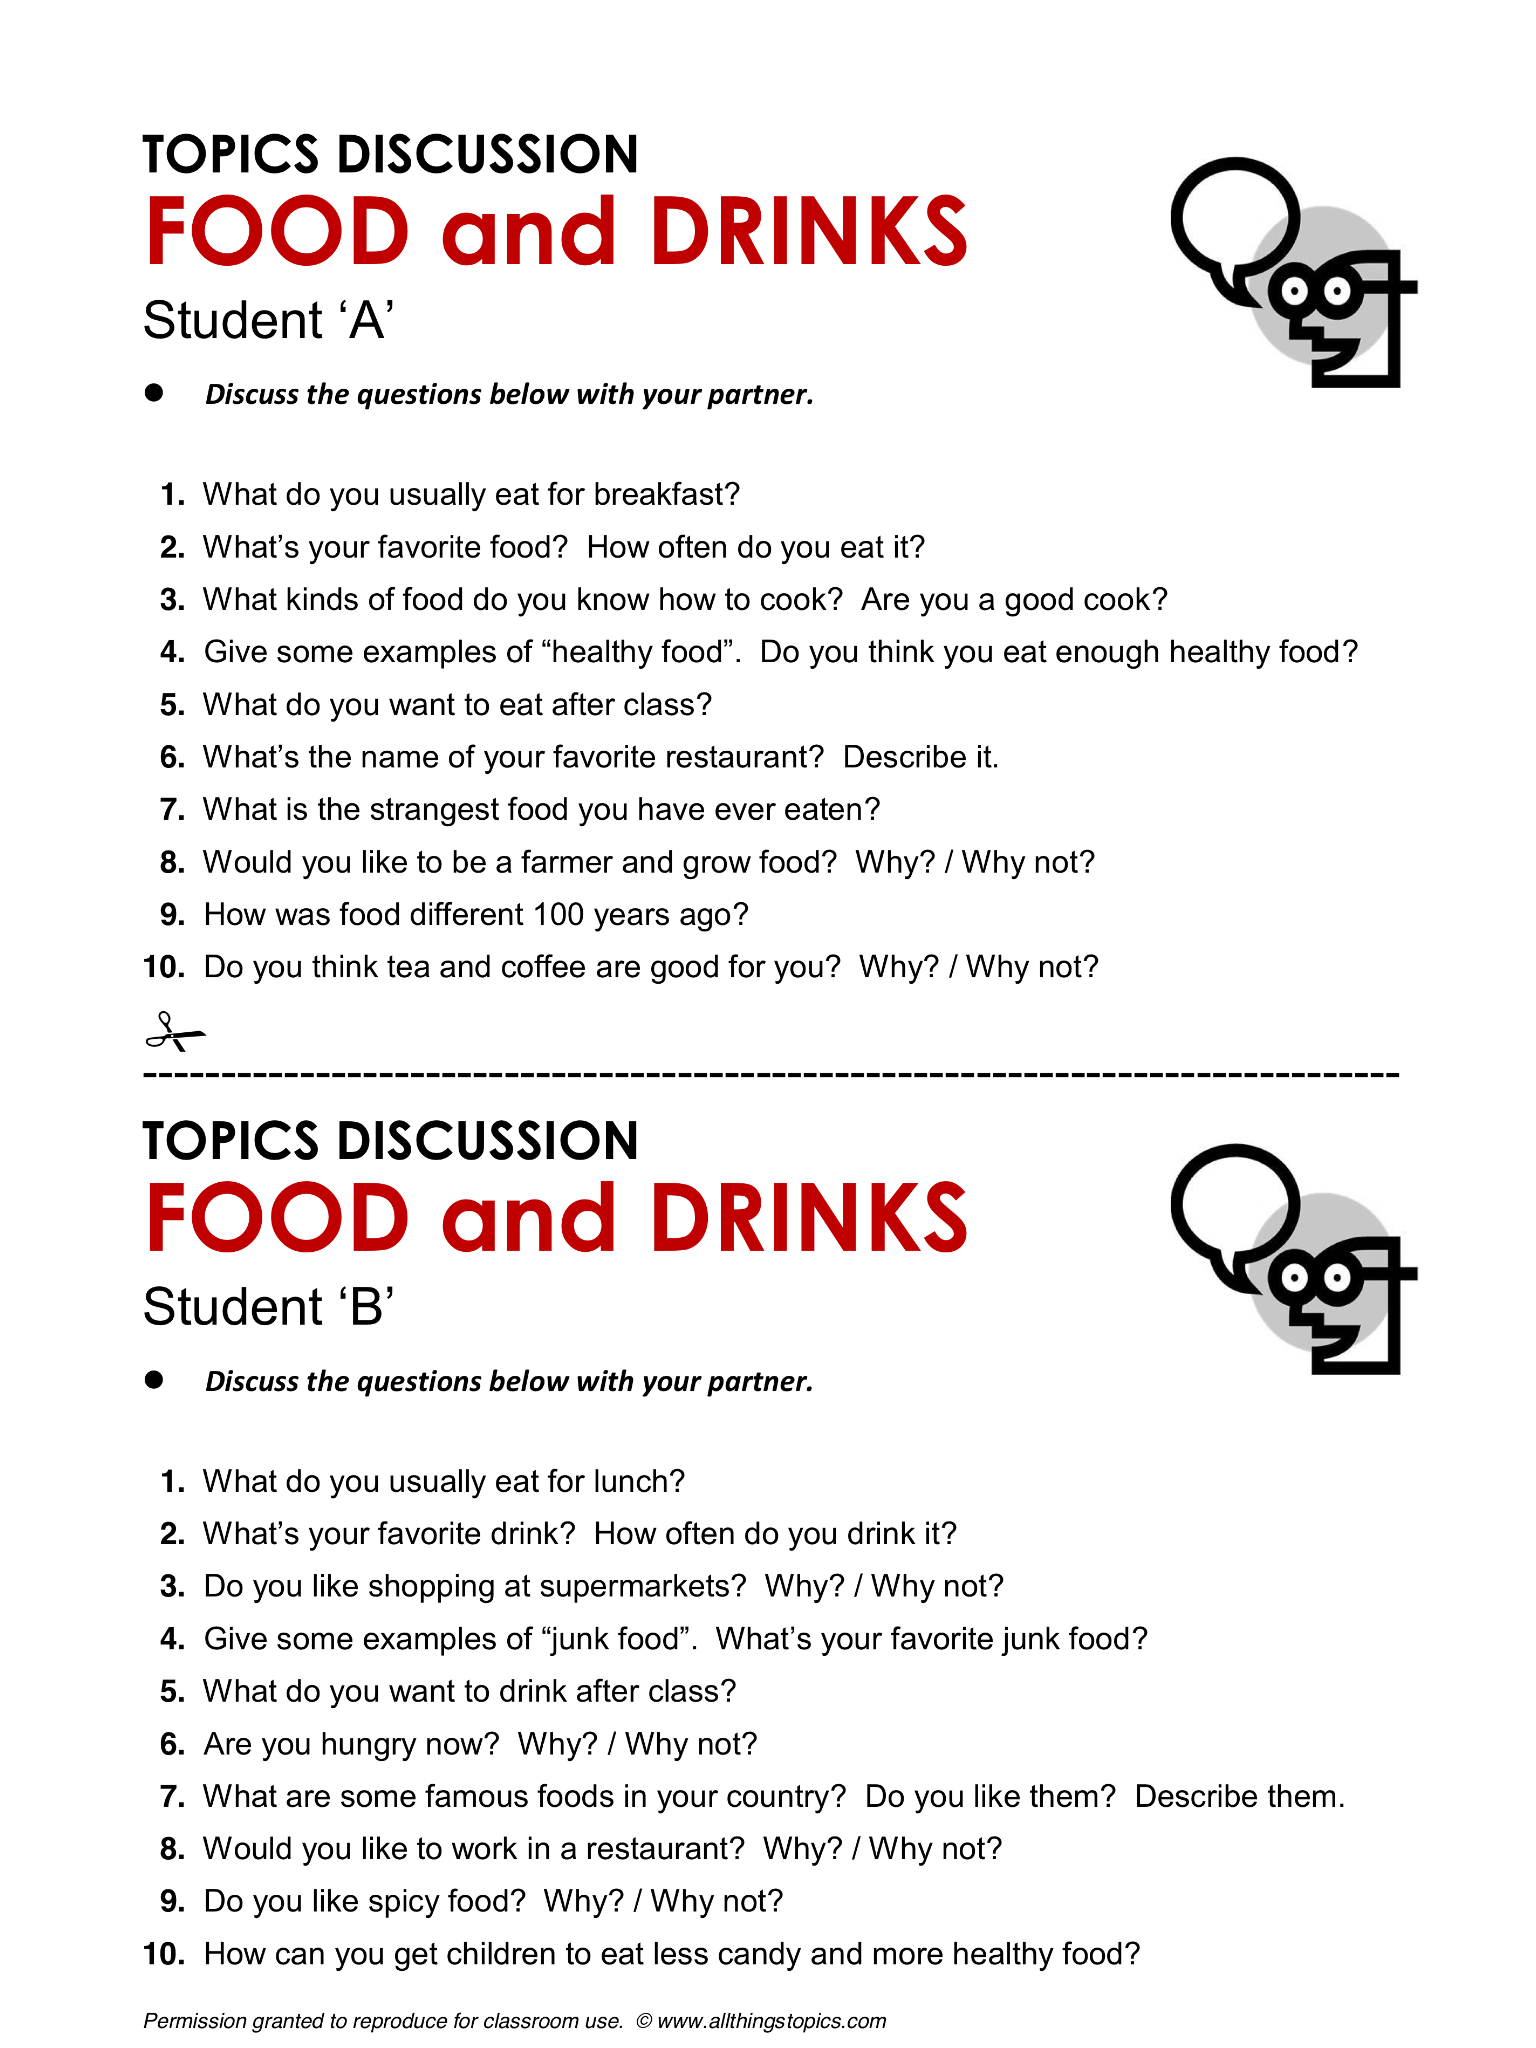 Food and Drinks, English, Learning English, Vocabulary, ESL, English Phrases, ww... -  Food and Drinks, English, Learning English, Vocabulary, ESL, English Phrases, www.allthingstopi…  - #Drinks #English #ESL #food #FoodAndDrink3ingredients #FoodAndDrinkactivities #FoodAndDrinkcakes #FoodAndDrinkdetoxwaters #FoodAndDrinkdrawings #FoodAndDrinkketo #FoodAndDrinkmagazinelcbo #FoodAndDrinkmeals #FoodAndDrinkposter #FoodAndDrinkslimmingworld #FoodAndDrinksnapchat #Learning #phrases #Vocabulary